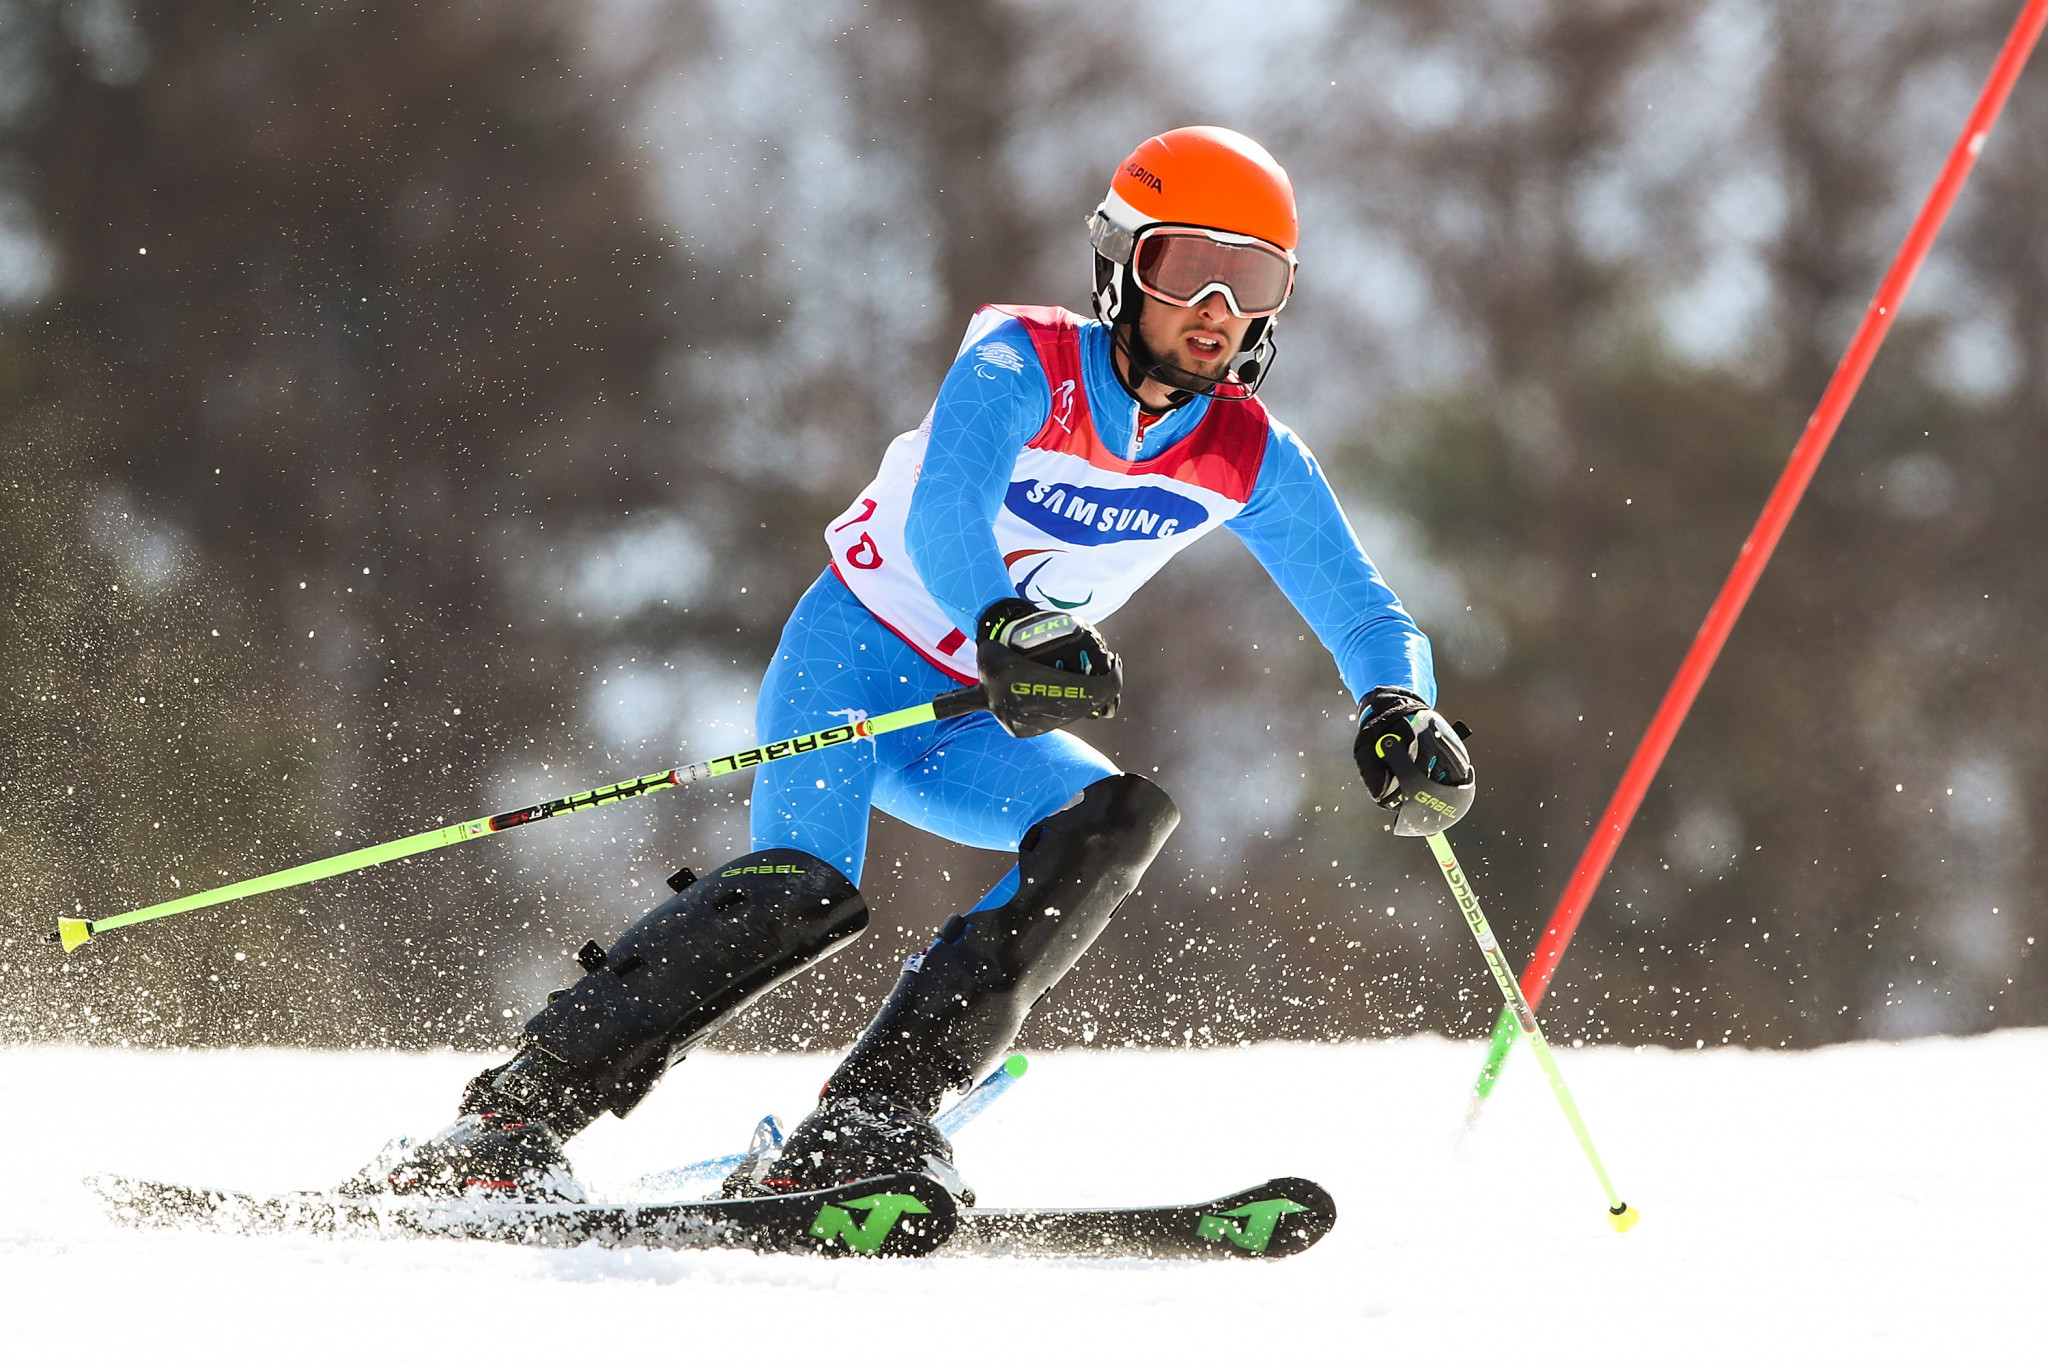 Voronchikhina edges out Bochet at World Para Alpine Skiing World Cup